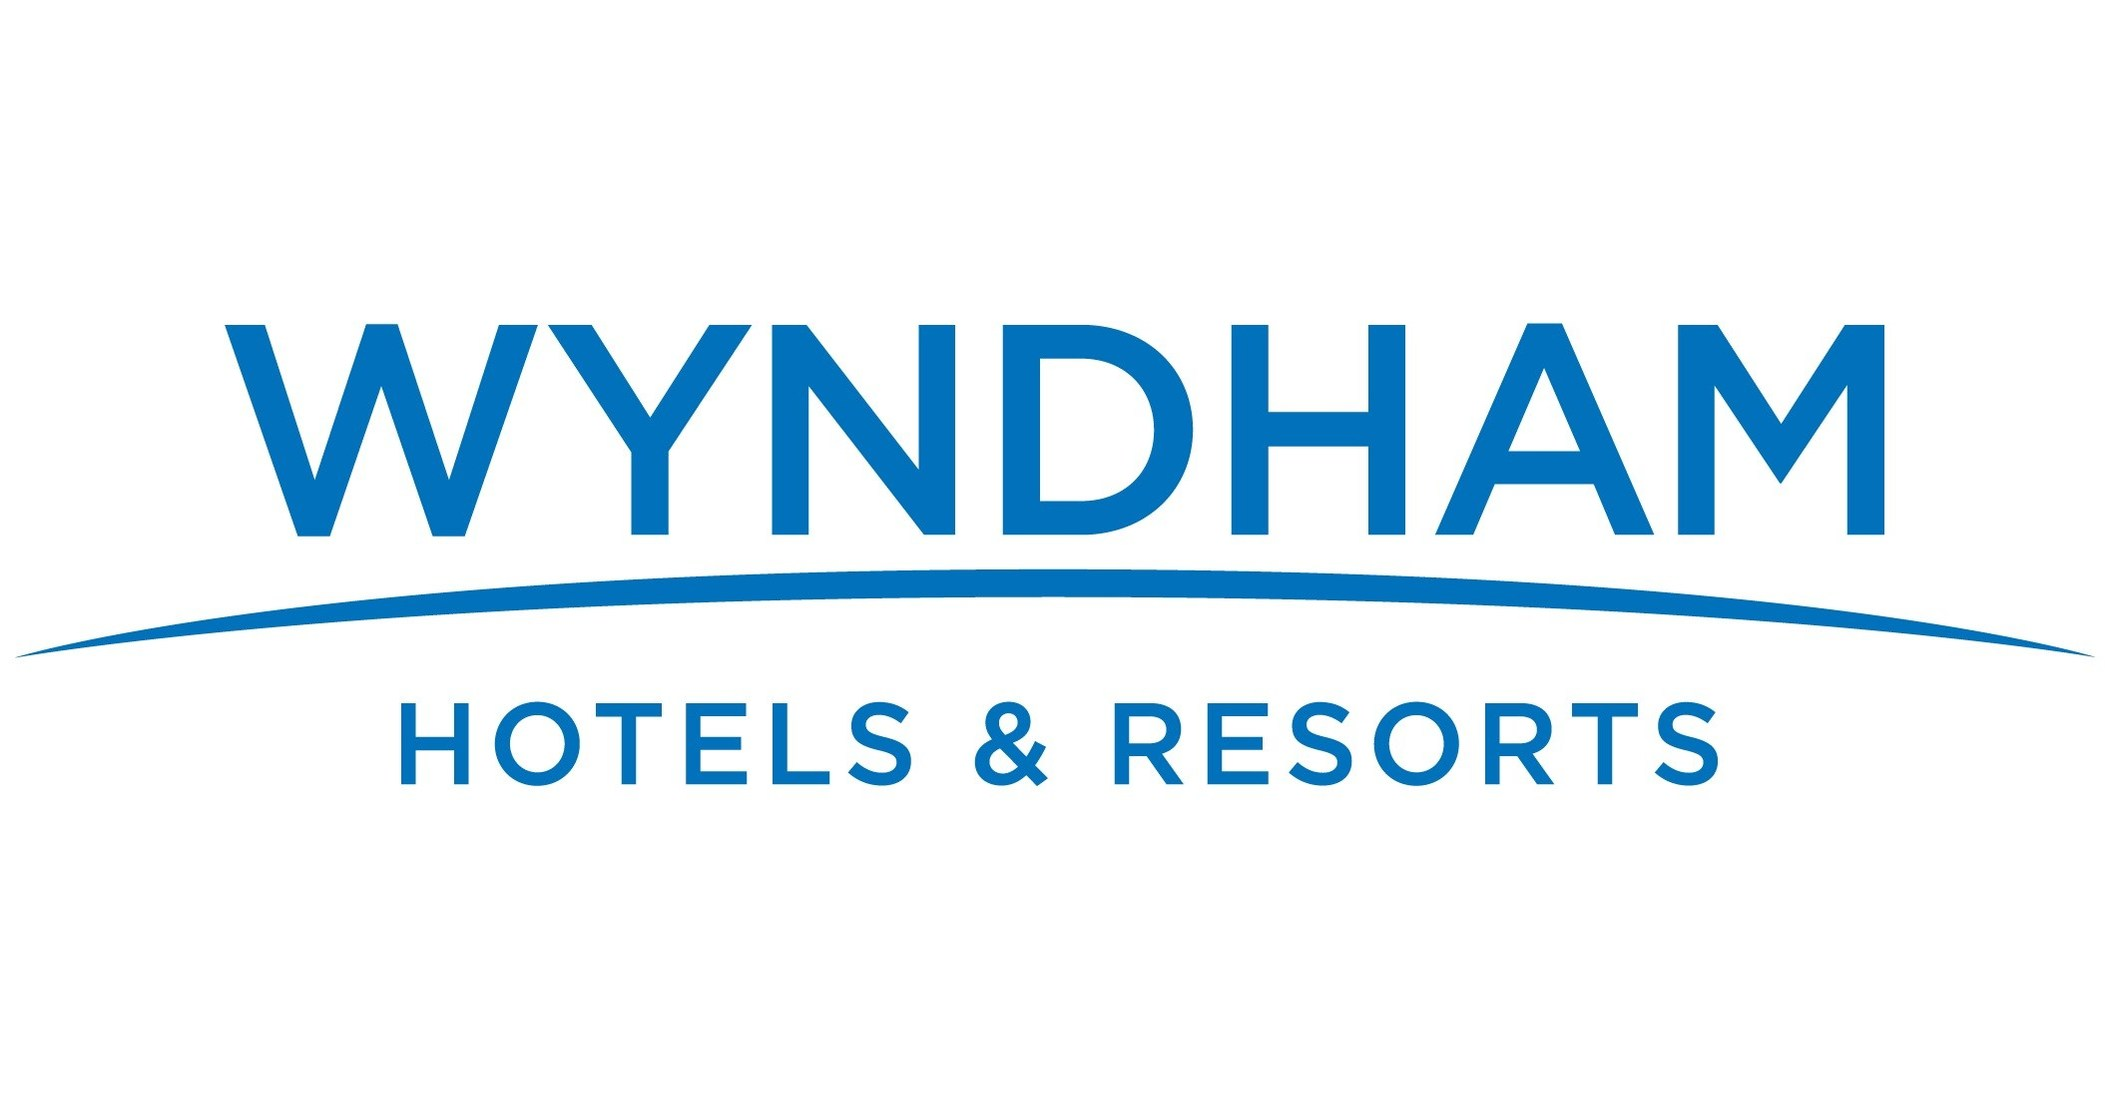 Days Inn® by Wyndham Debuts in New Zealand